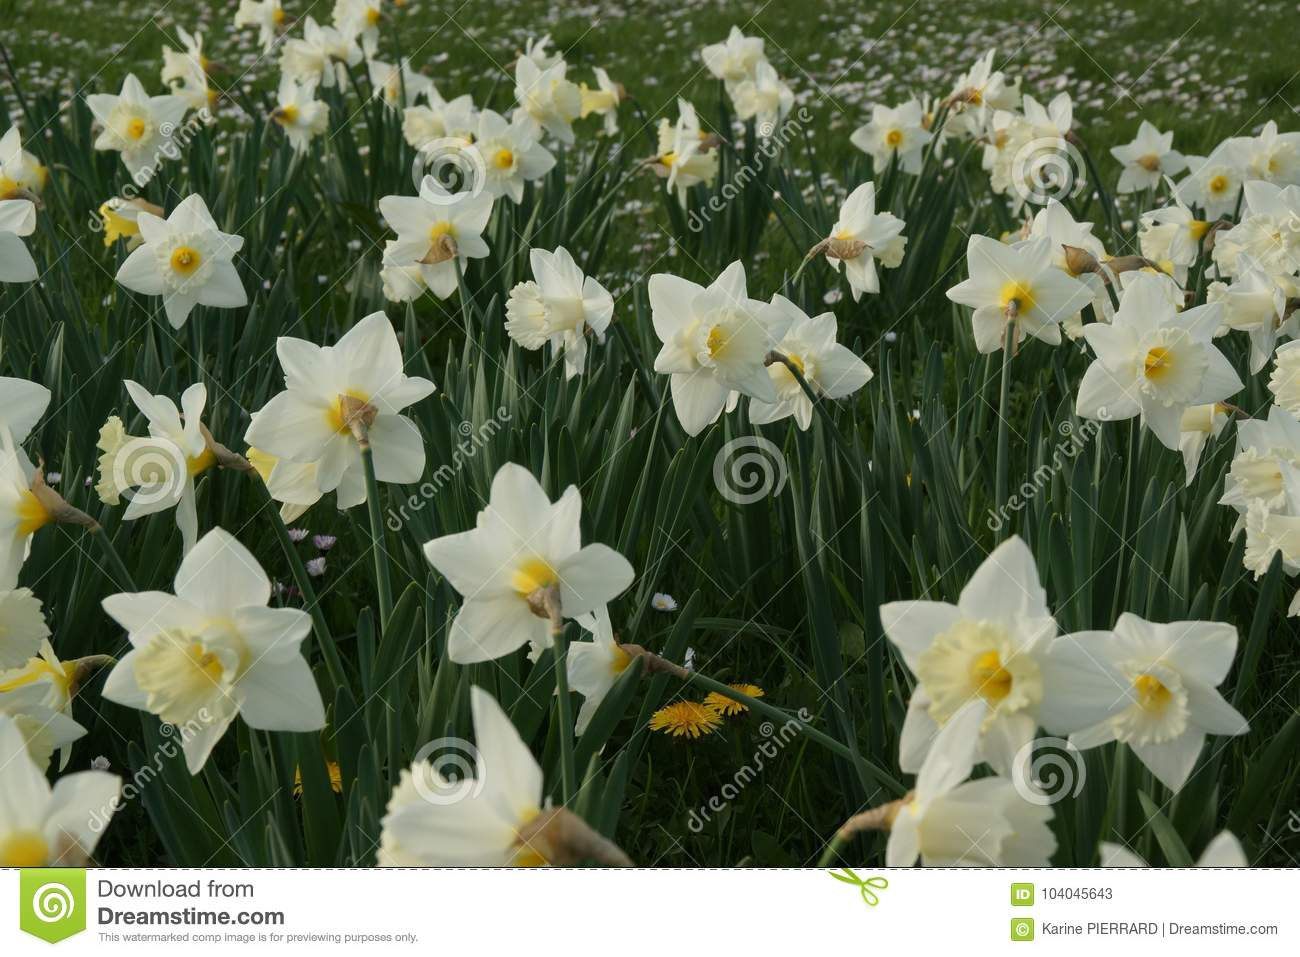 Flowerbed Orchestra Of White Daffodils - France Stock Image